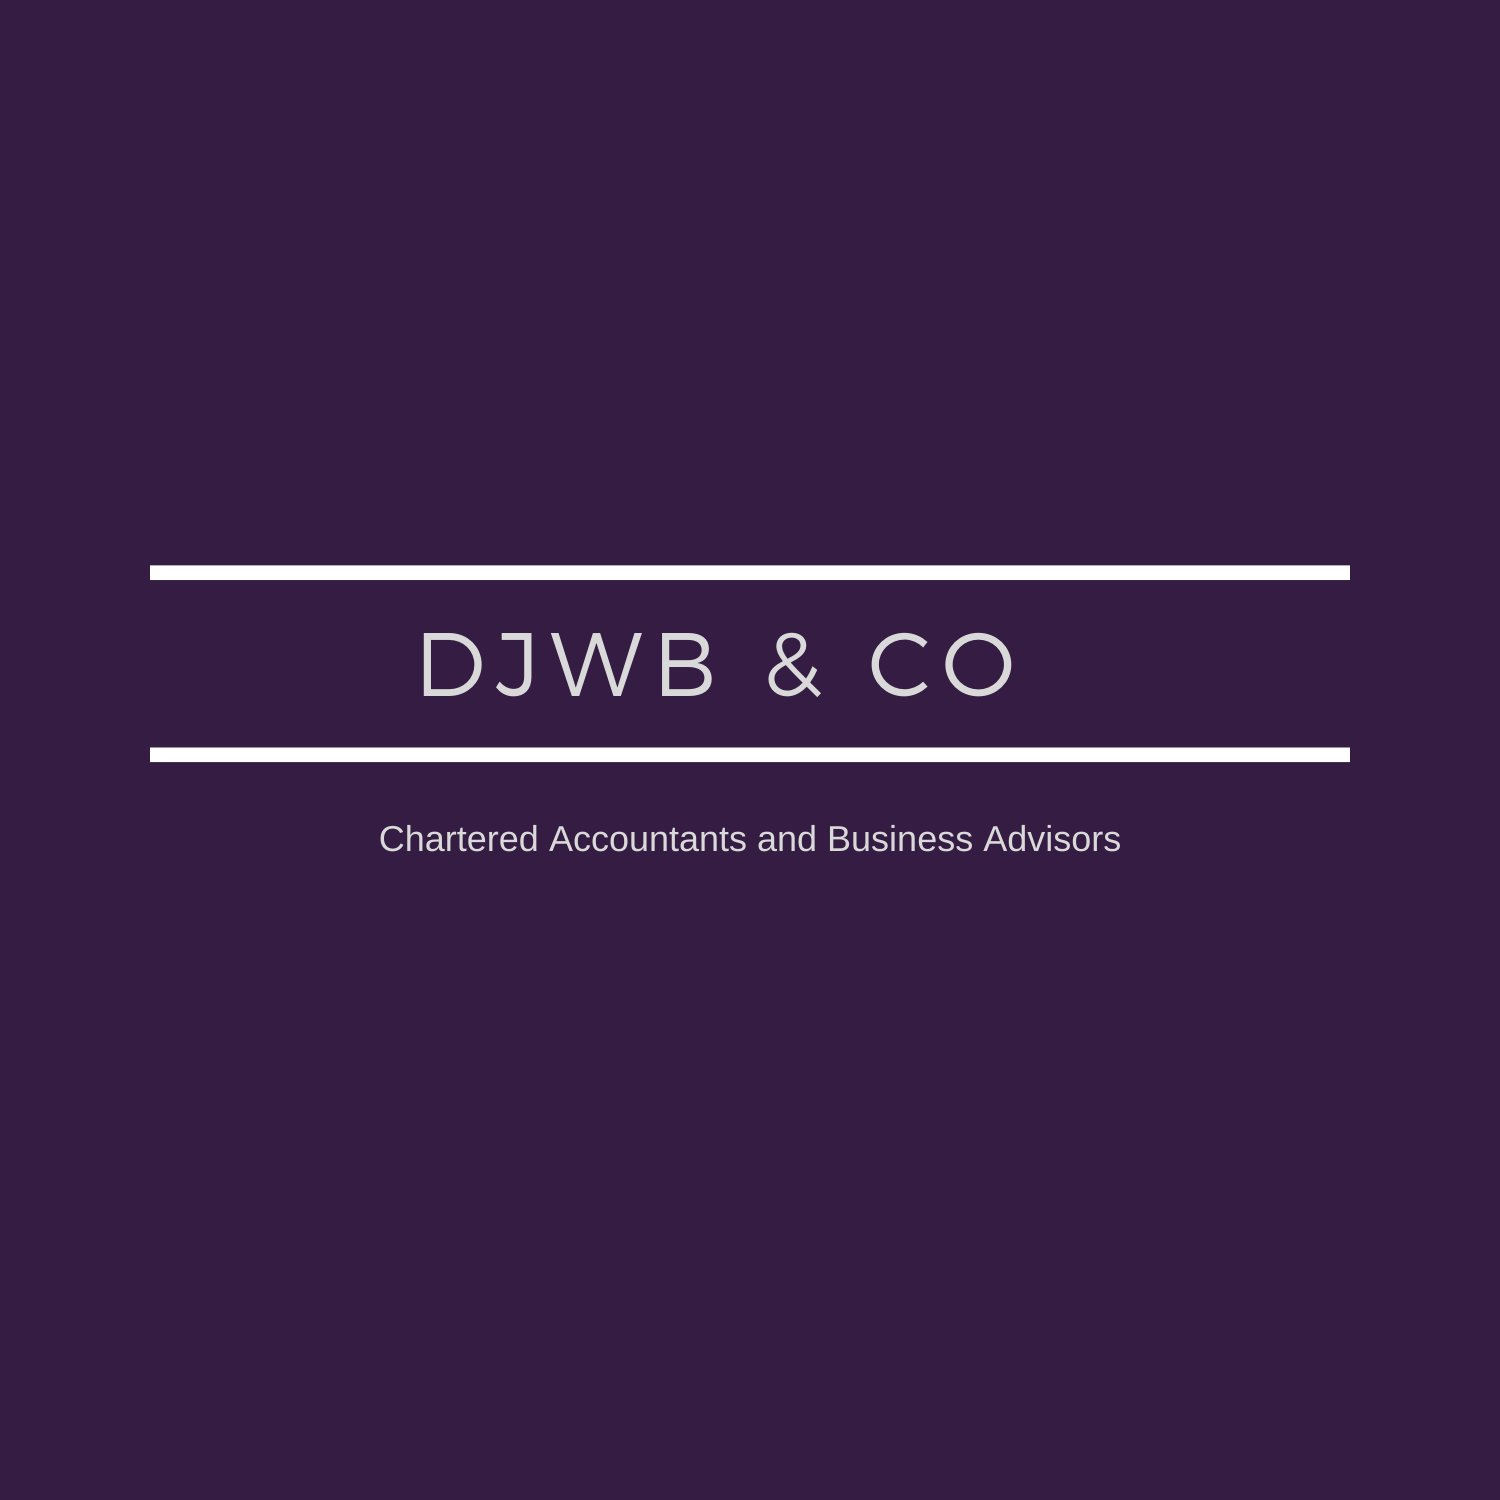 Logo of DJWB Co Business Advisors Ltd Business And Management Consultants In Bedford, Bedfordshire